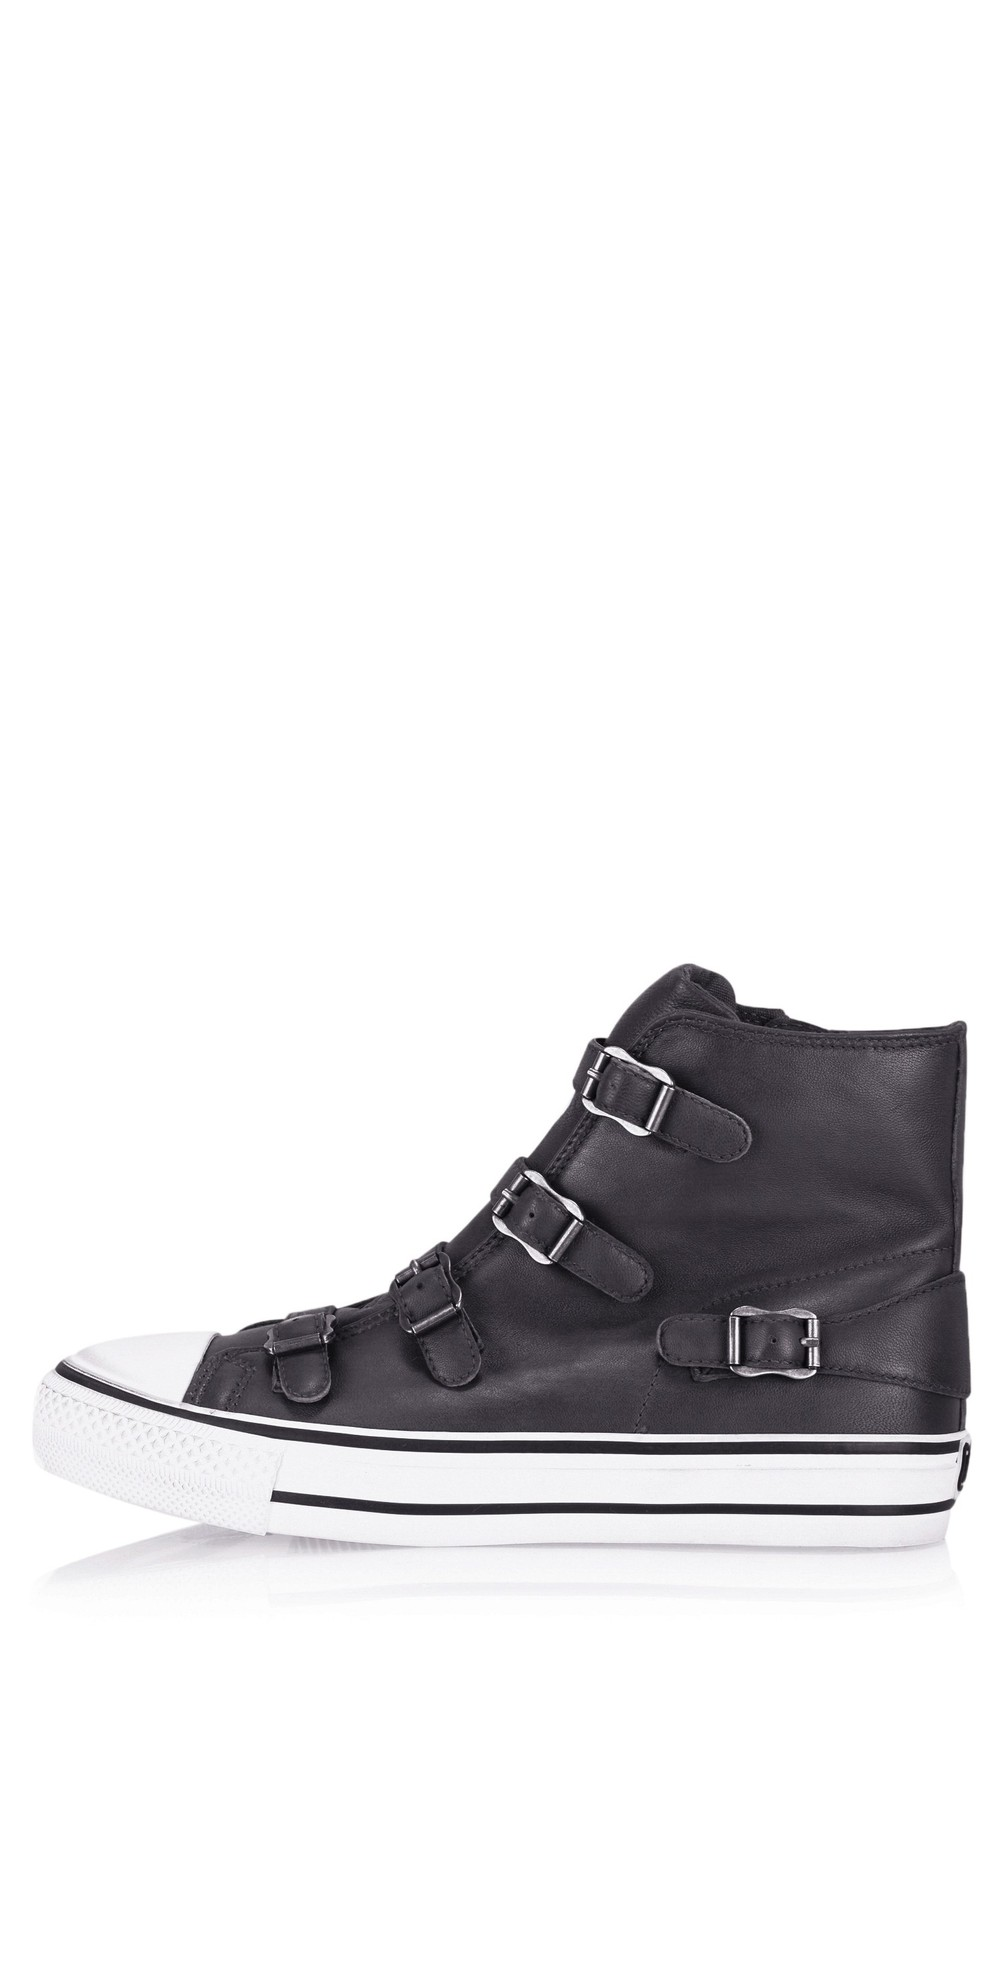 Virgin Graphite Leather Trainers main image